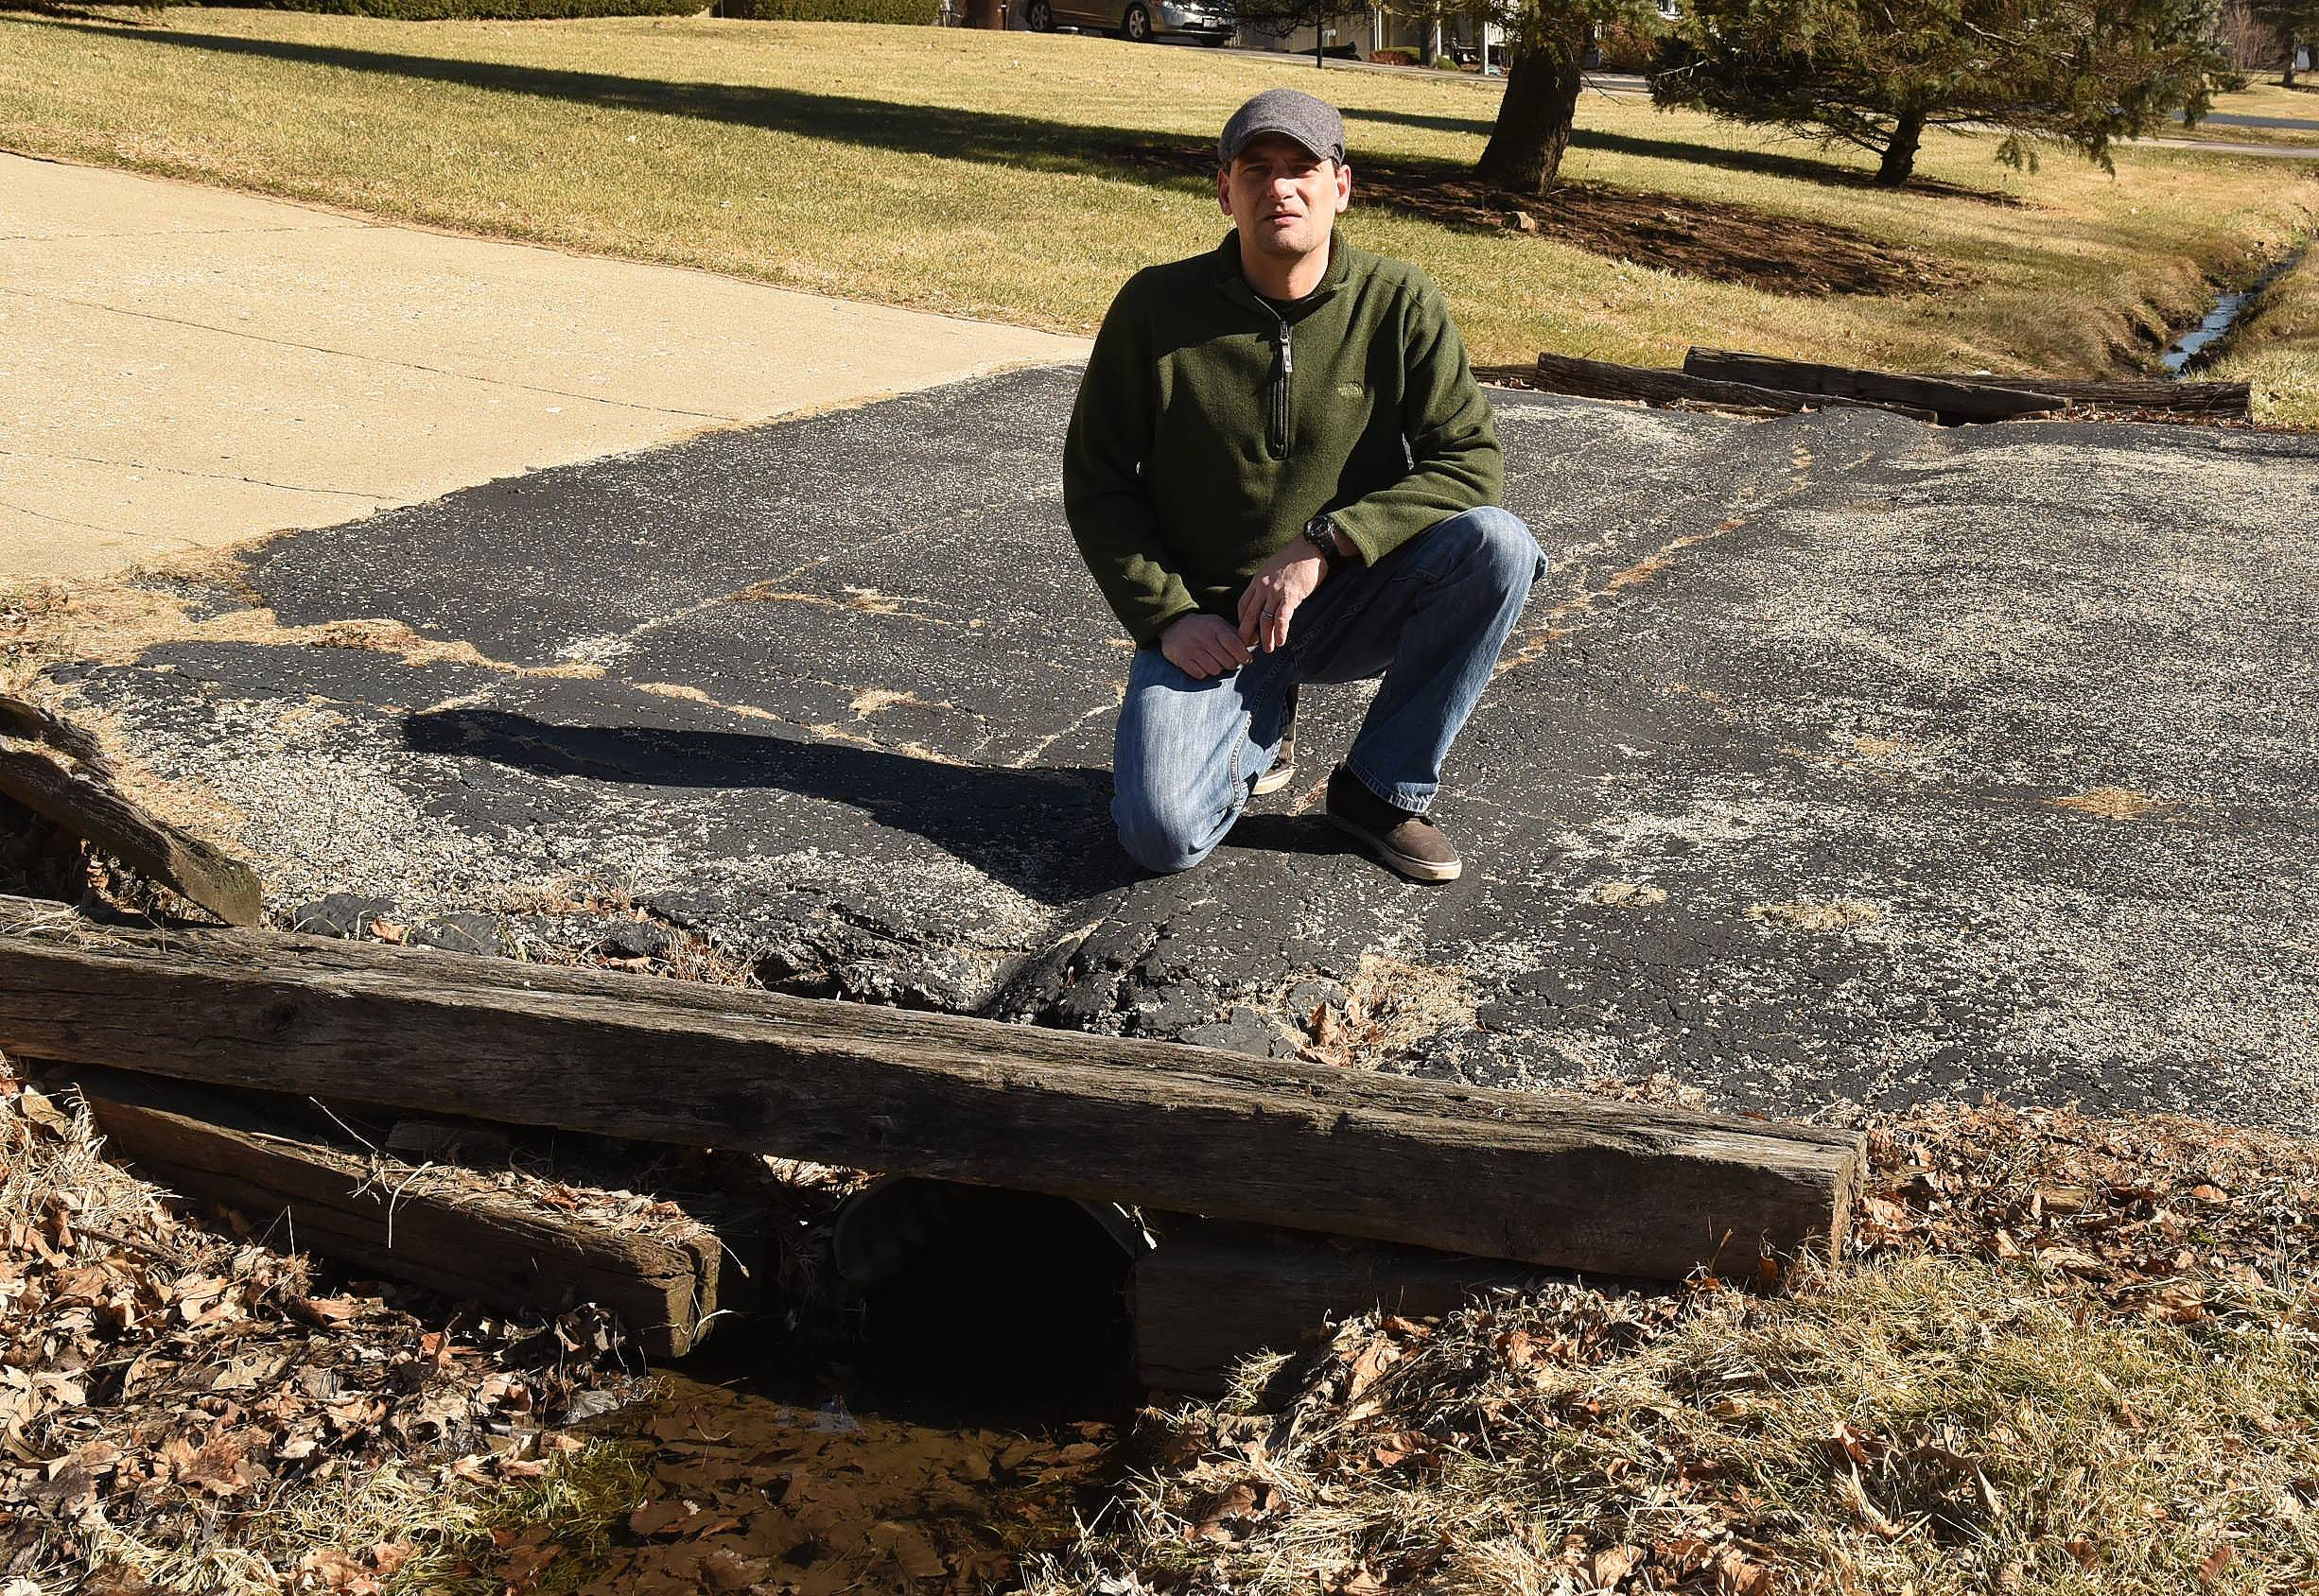 Henry Kolff said he refused to pay Dundee Township Highway Commissioner Larry Braasch to replace his culvert, so the work wasn't done. Several neighboring townships replace culverts at no charge.